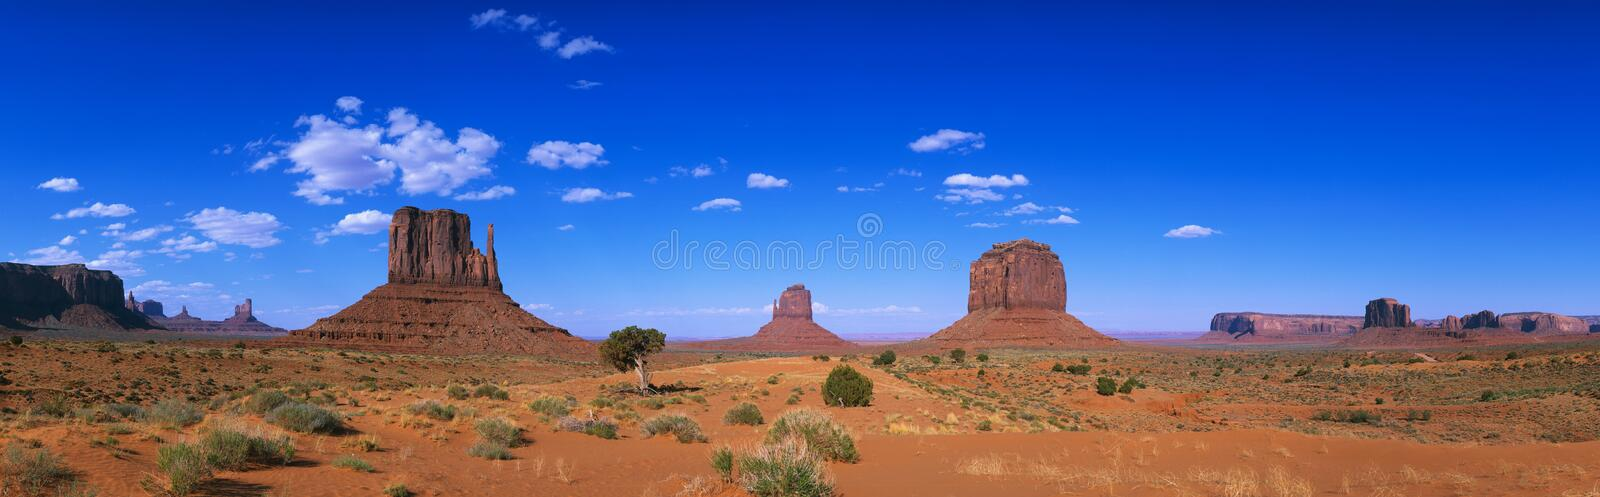 Monument Valley Tribal Park, AZ. This is a 360 degree panoramic image of Monument Valley Navajo Tribal Park at the Arizona/Utah border stock image